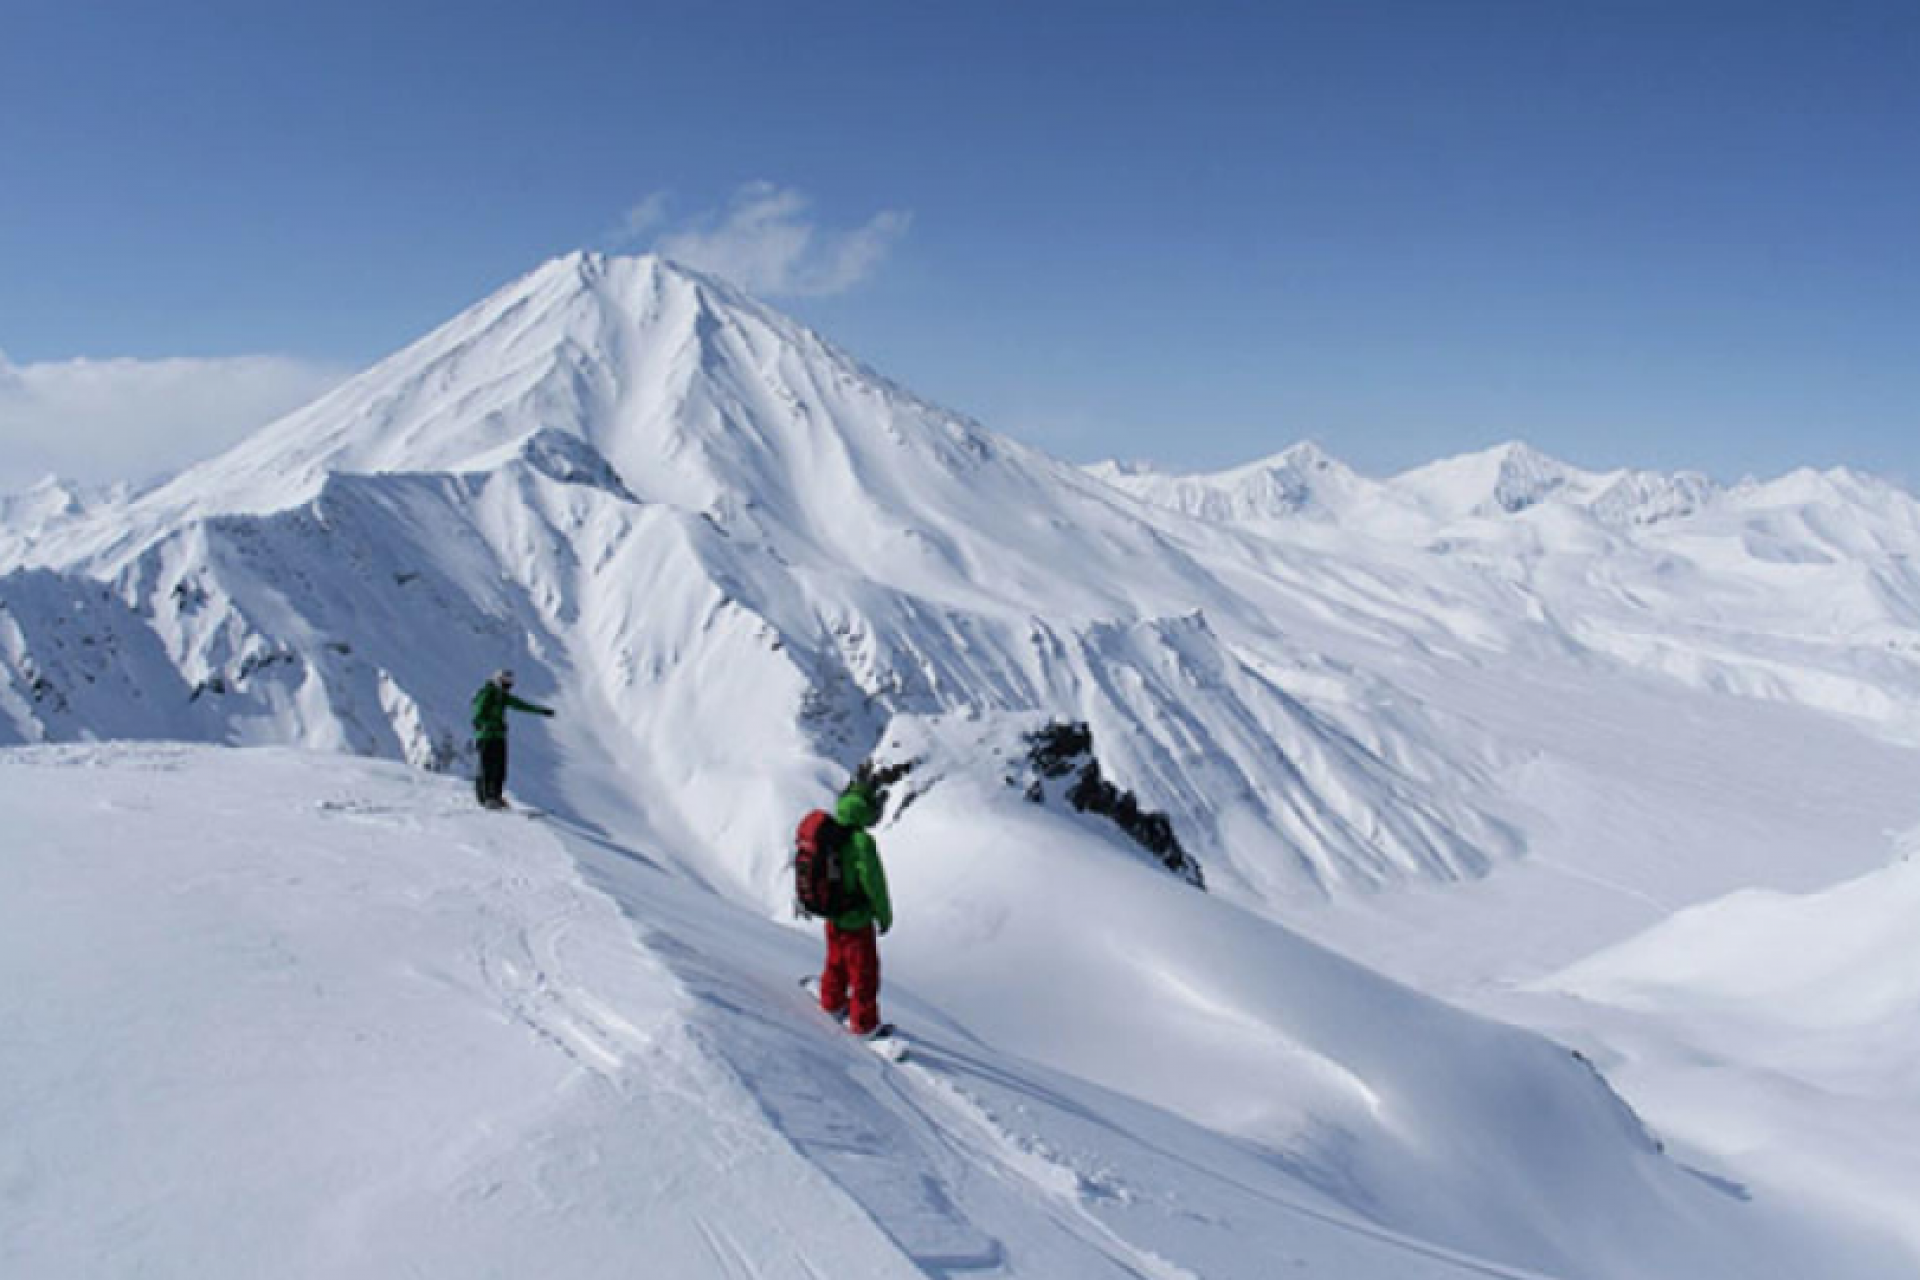 The main ski resort of Kamchatka is ready for the Russian Alpine Ski Championships